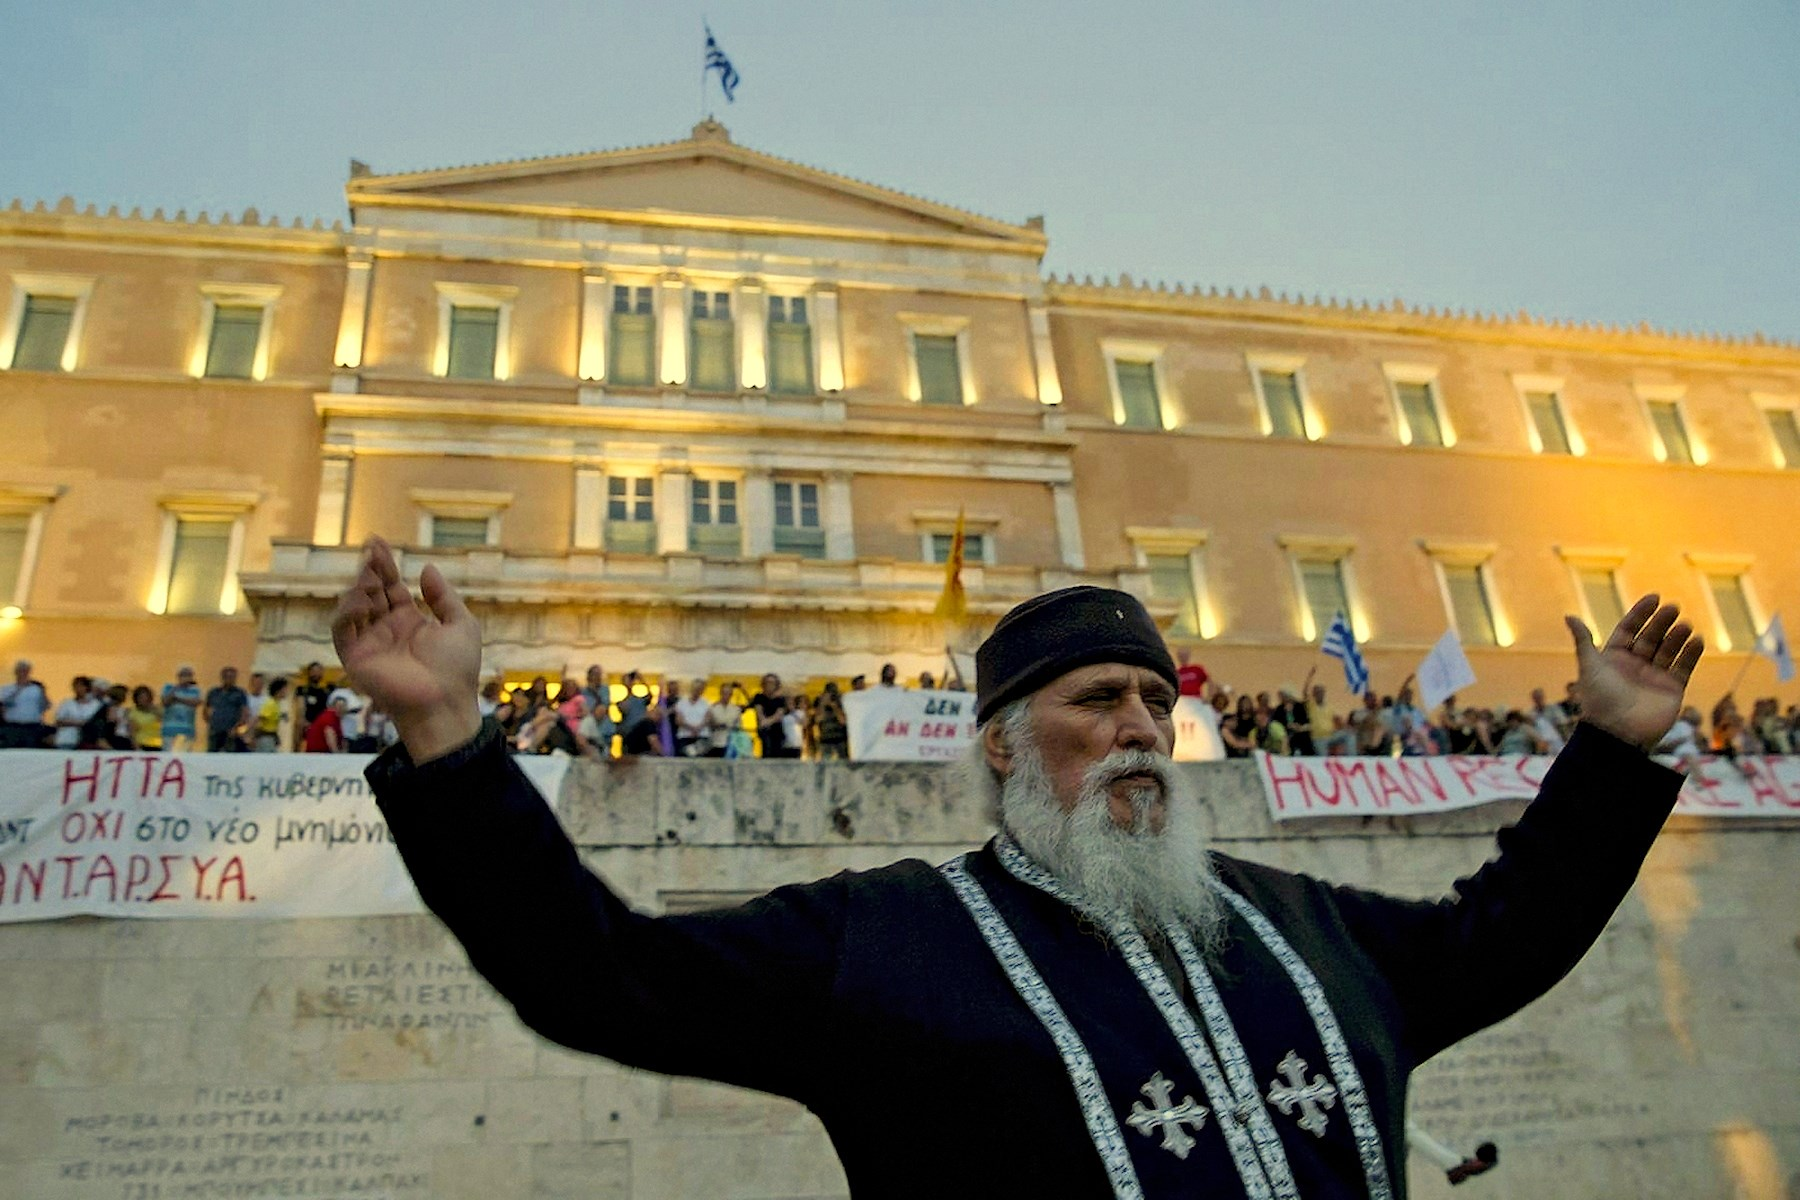 00 a rowdy greek monk at anti-austerity protest. 220615